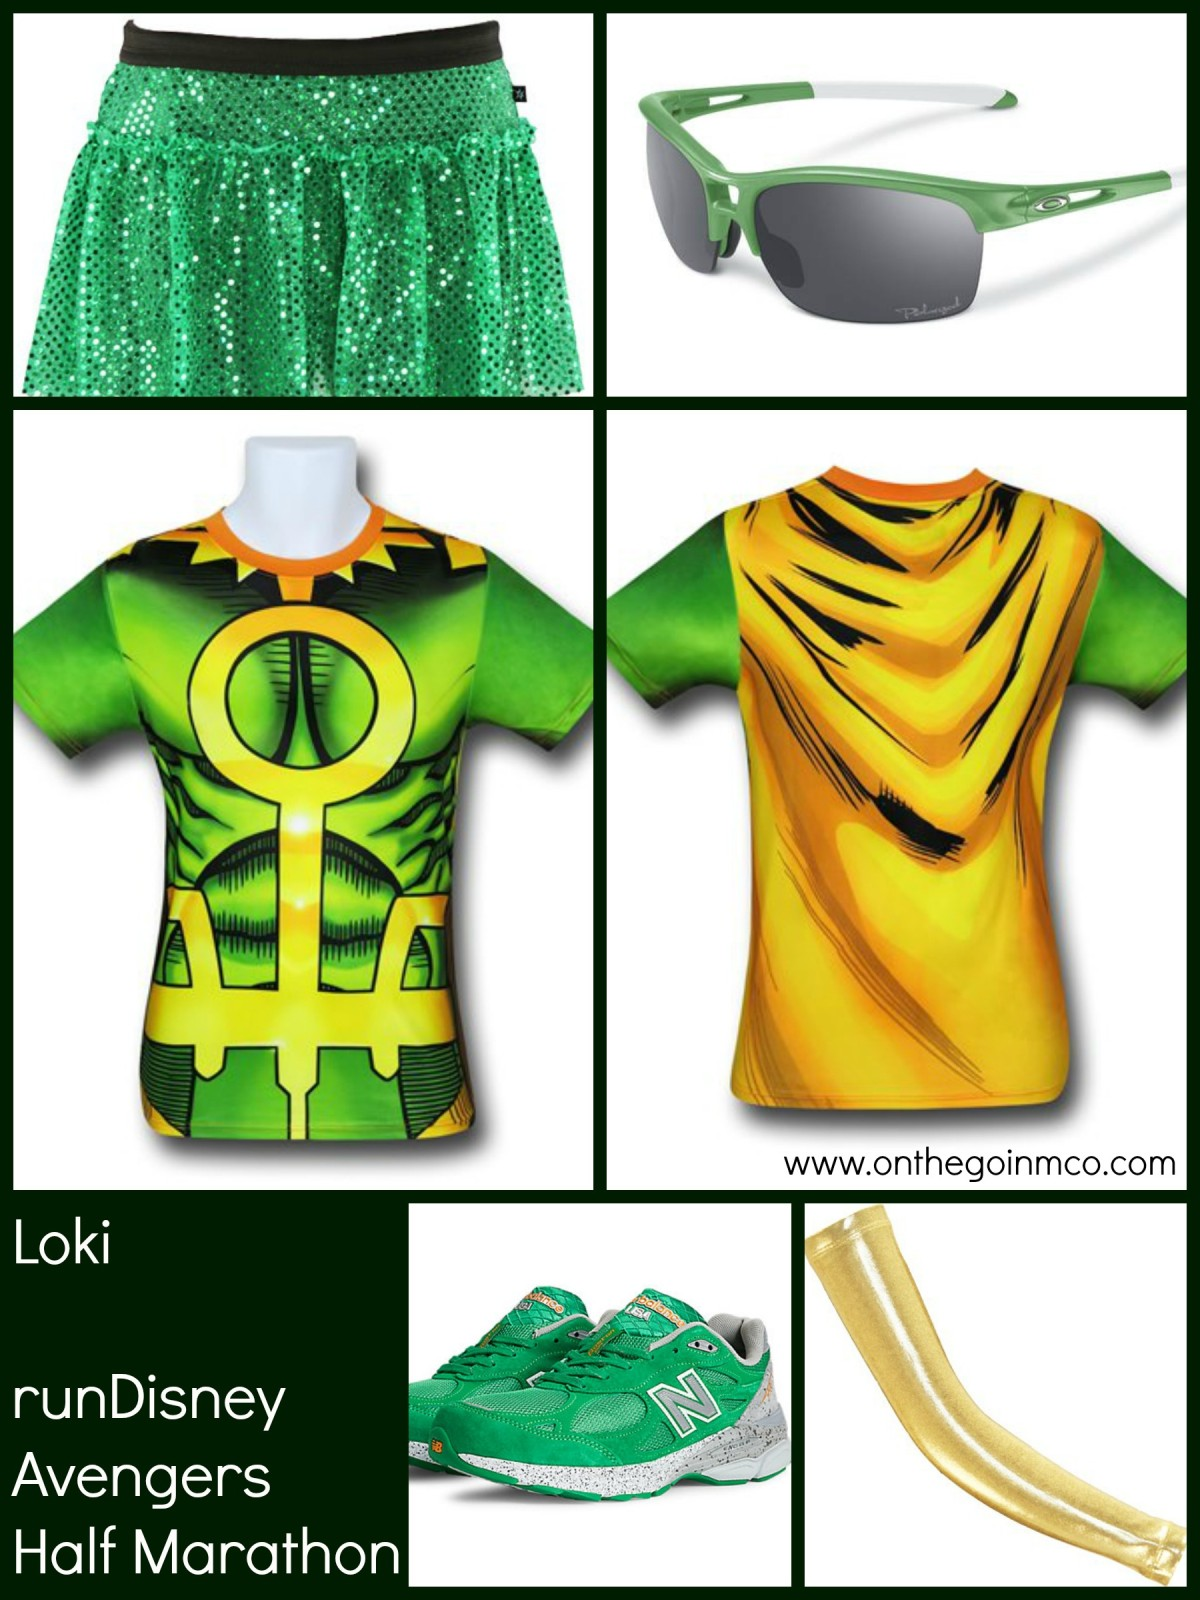 Loki runDisney Avengers Half Marahton Idea Collage